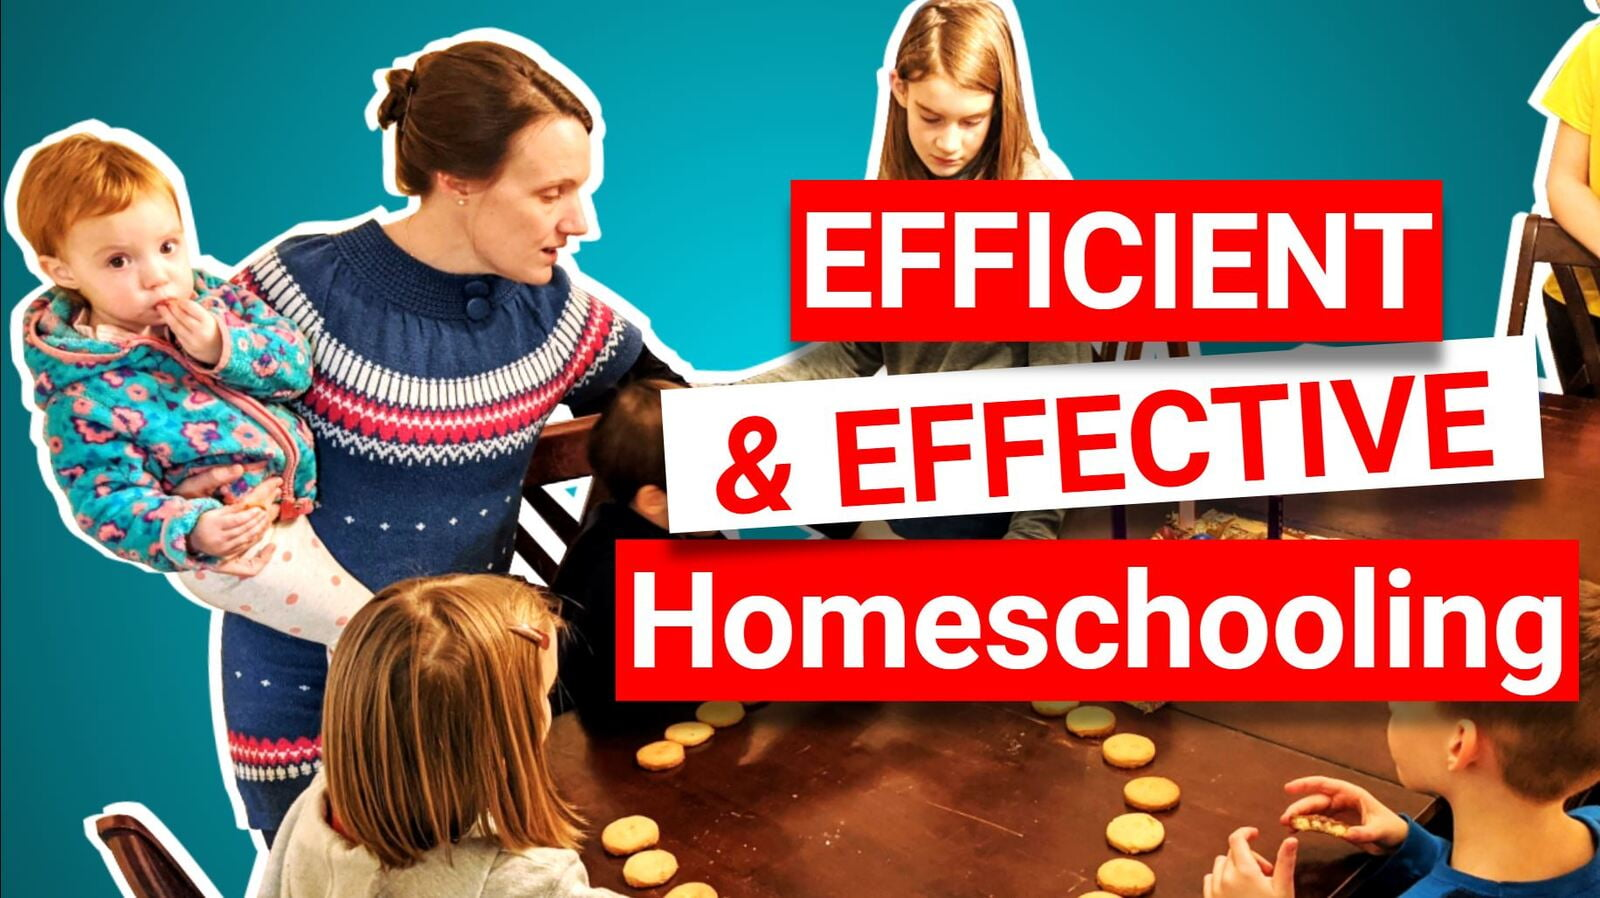 Webinar: Classical Homeschooling for Busy Moms: Let's Get Efficient and Effective!